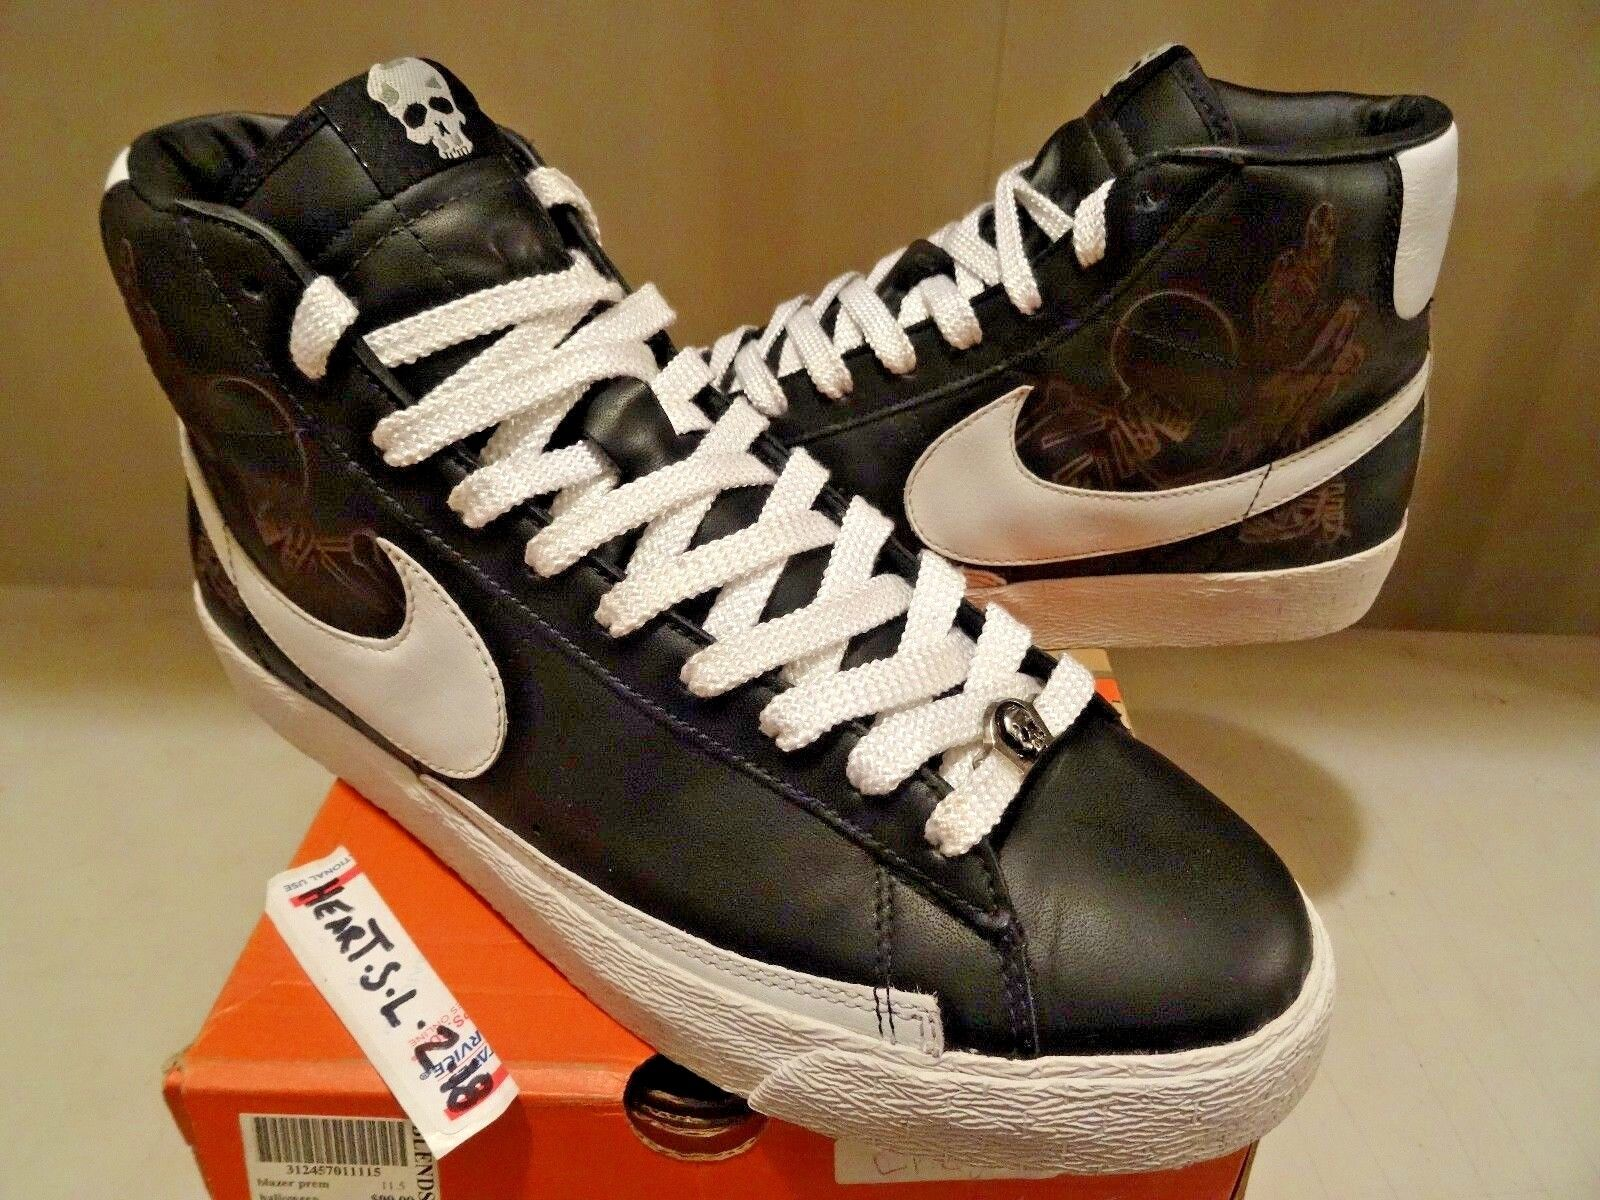 2006 Nike Blazer Halloween SB BLK OFF Weiß Orange BLAZE 312457-011 SZ 11.5 DUNK